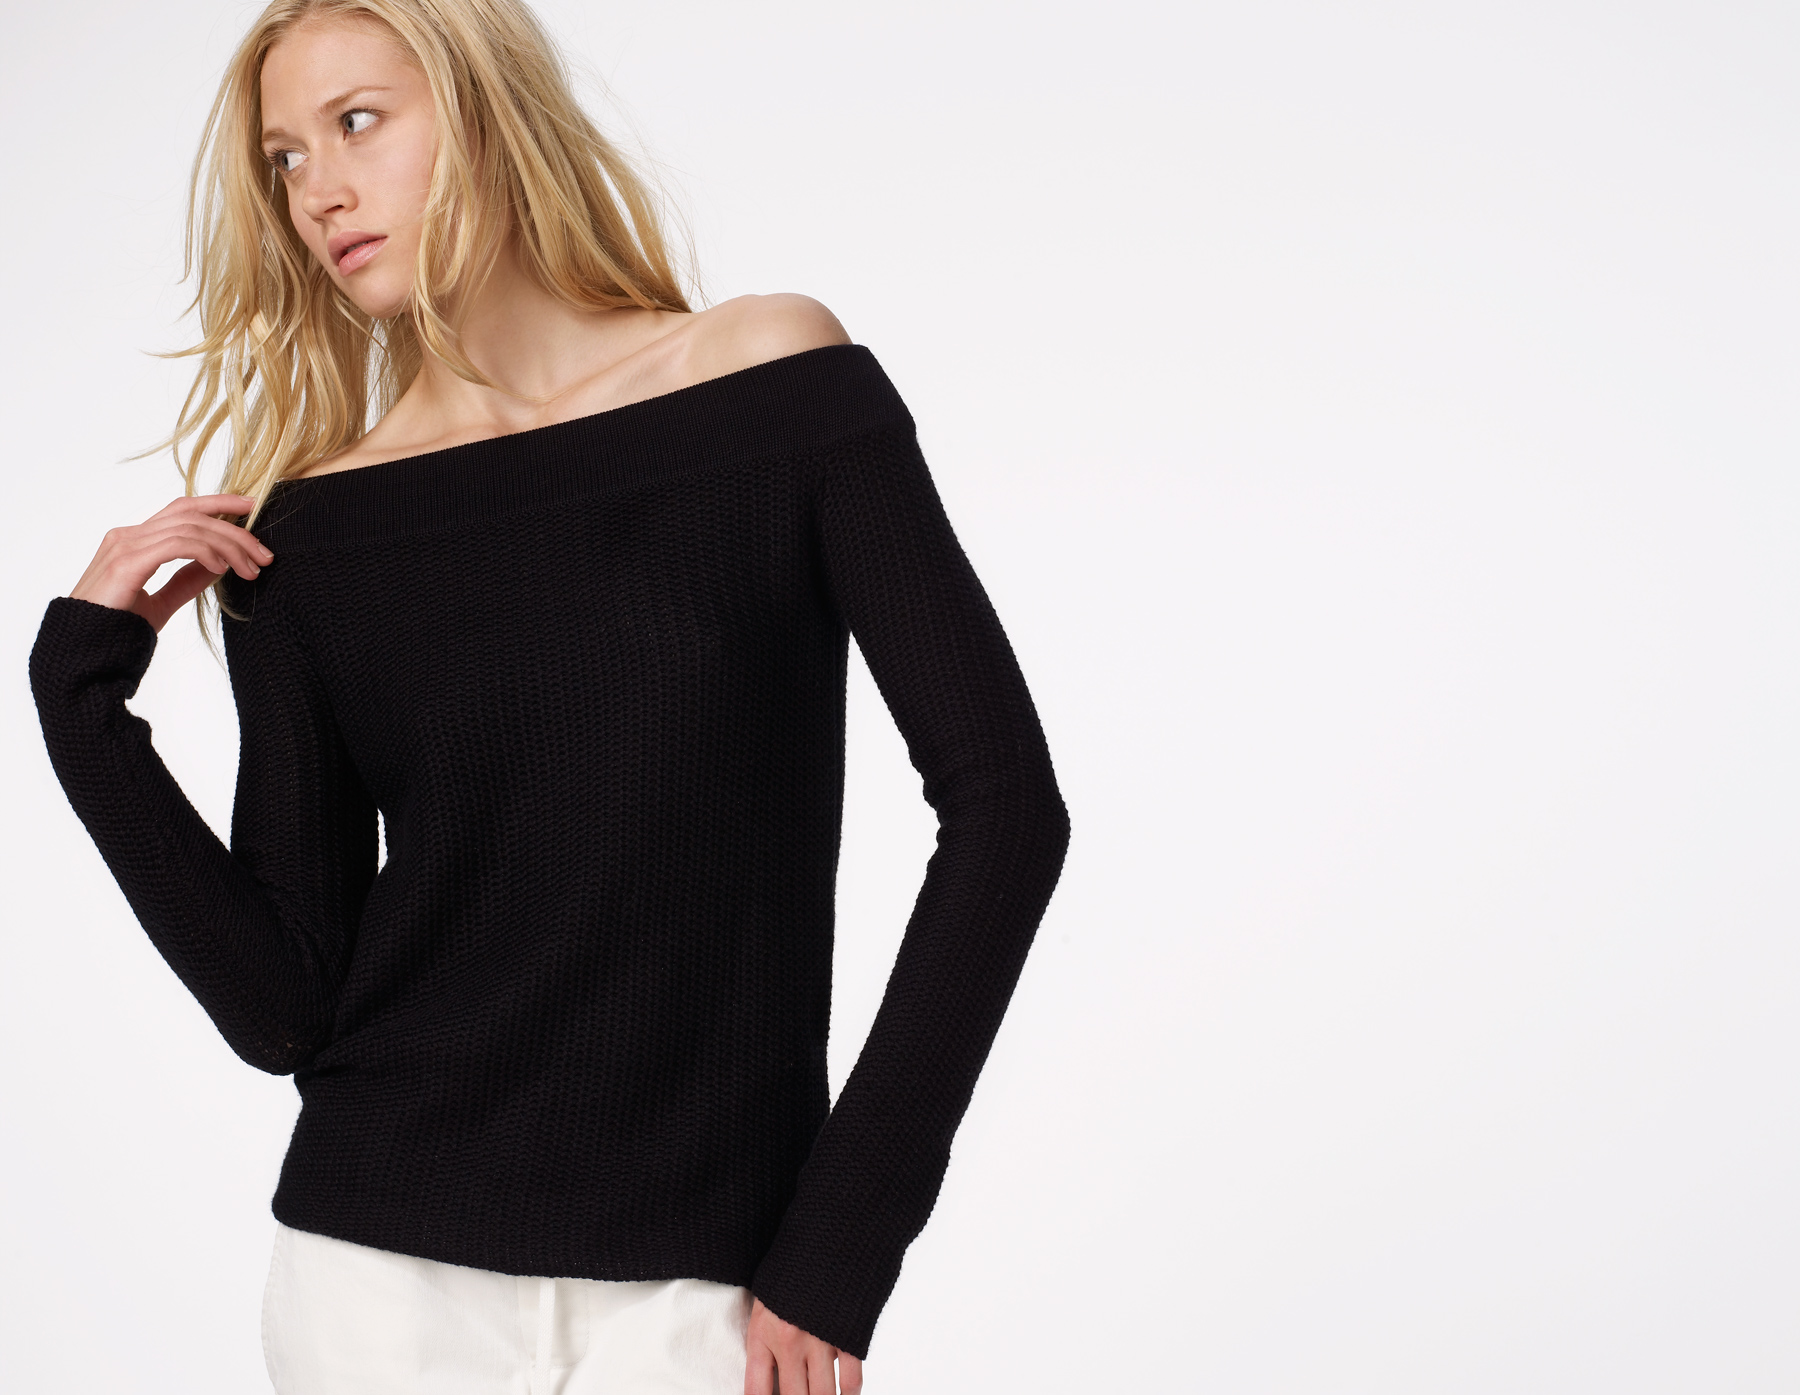 d28865d7a1 Lyst - James Perse Two Tone Off Shoulder Sweater in Black